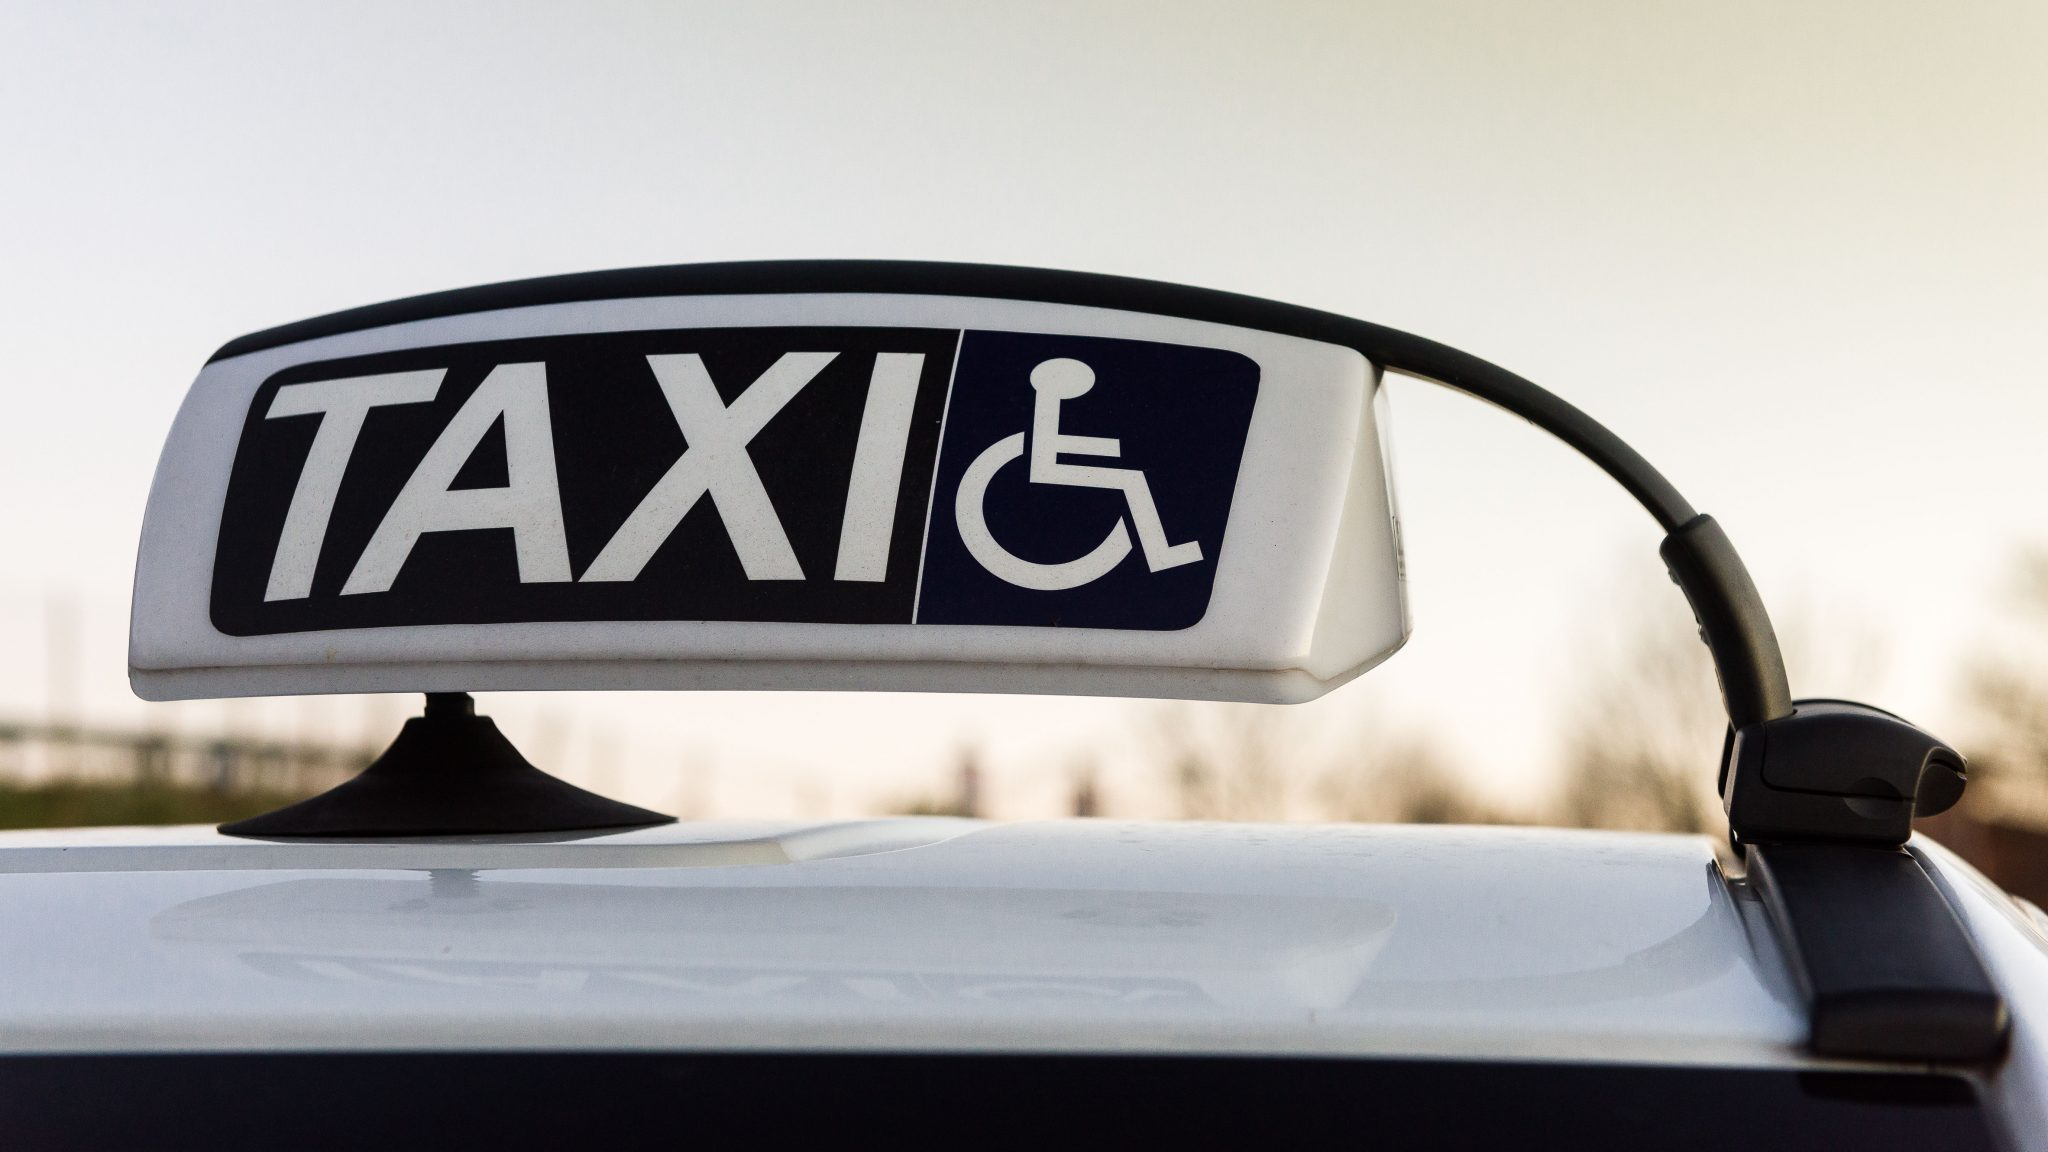 Taxi signage with wheelchair symbol